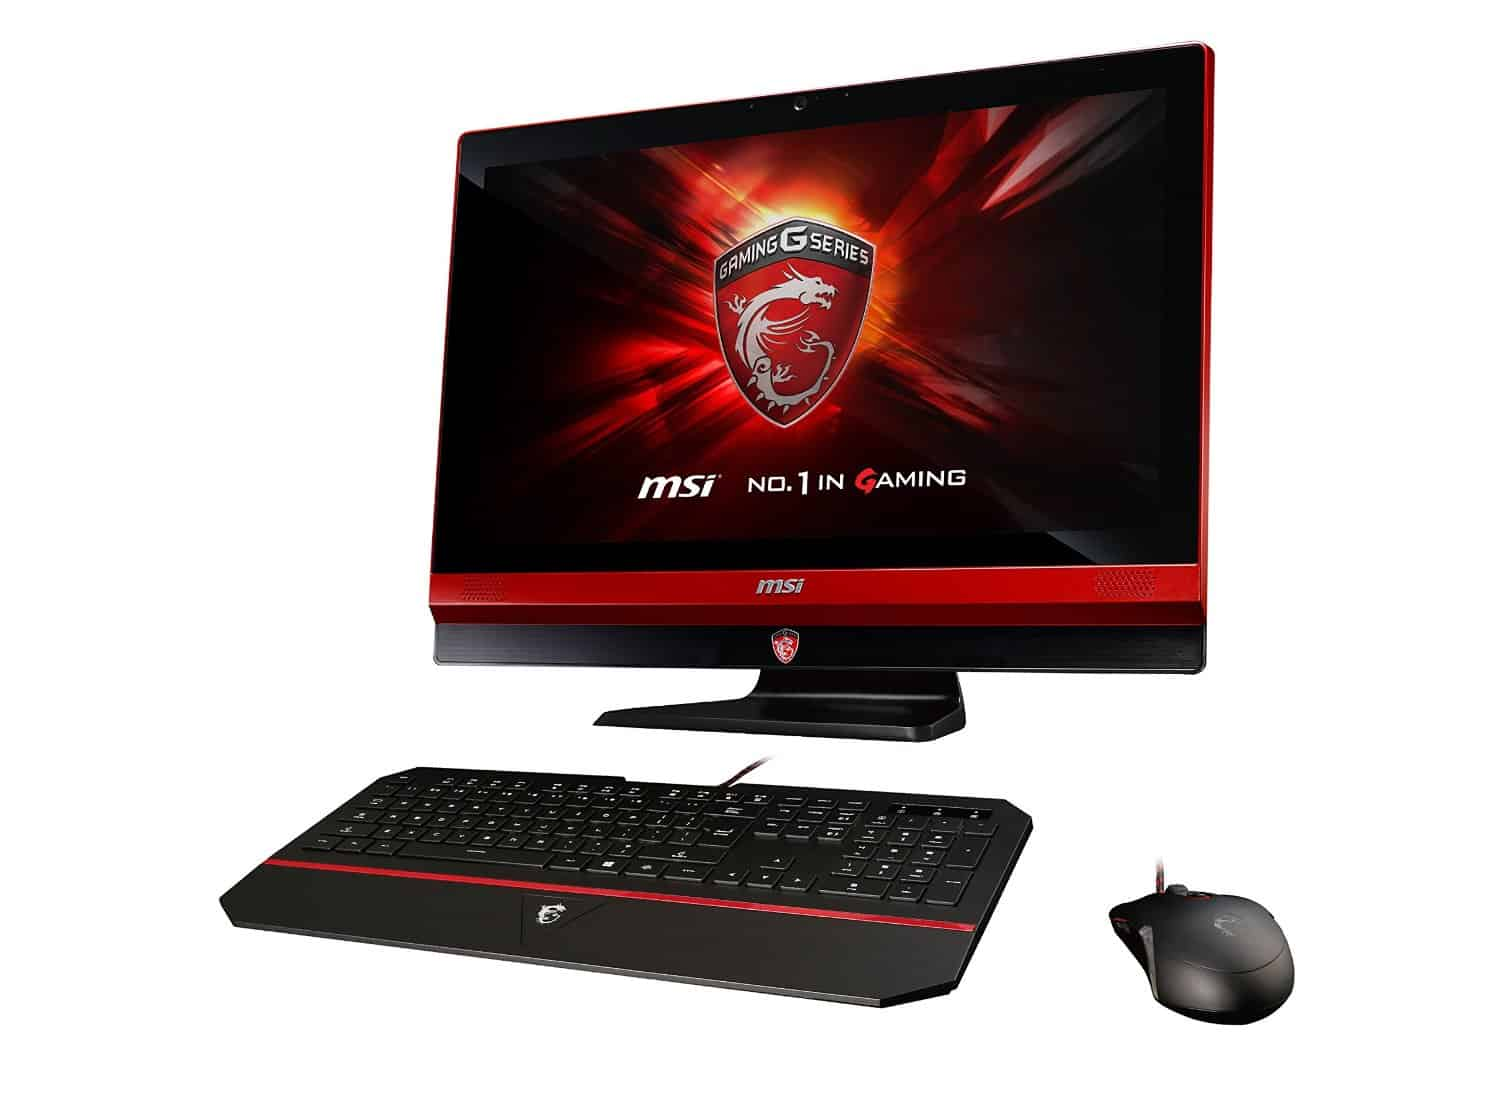 MSI All-In-One Gaming Desktop